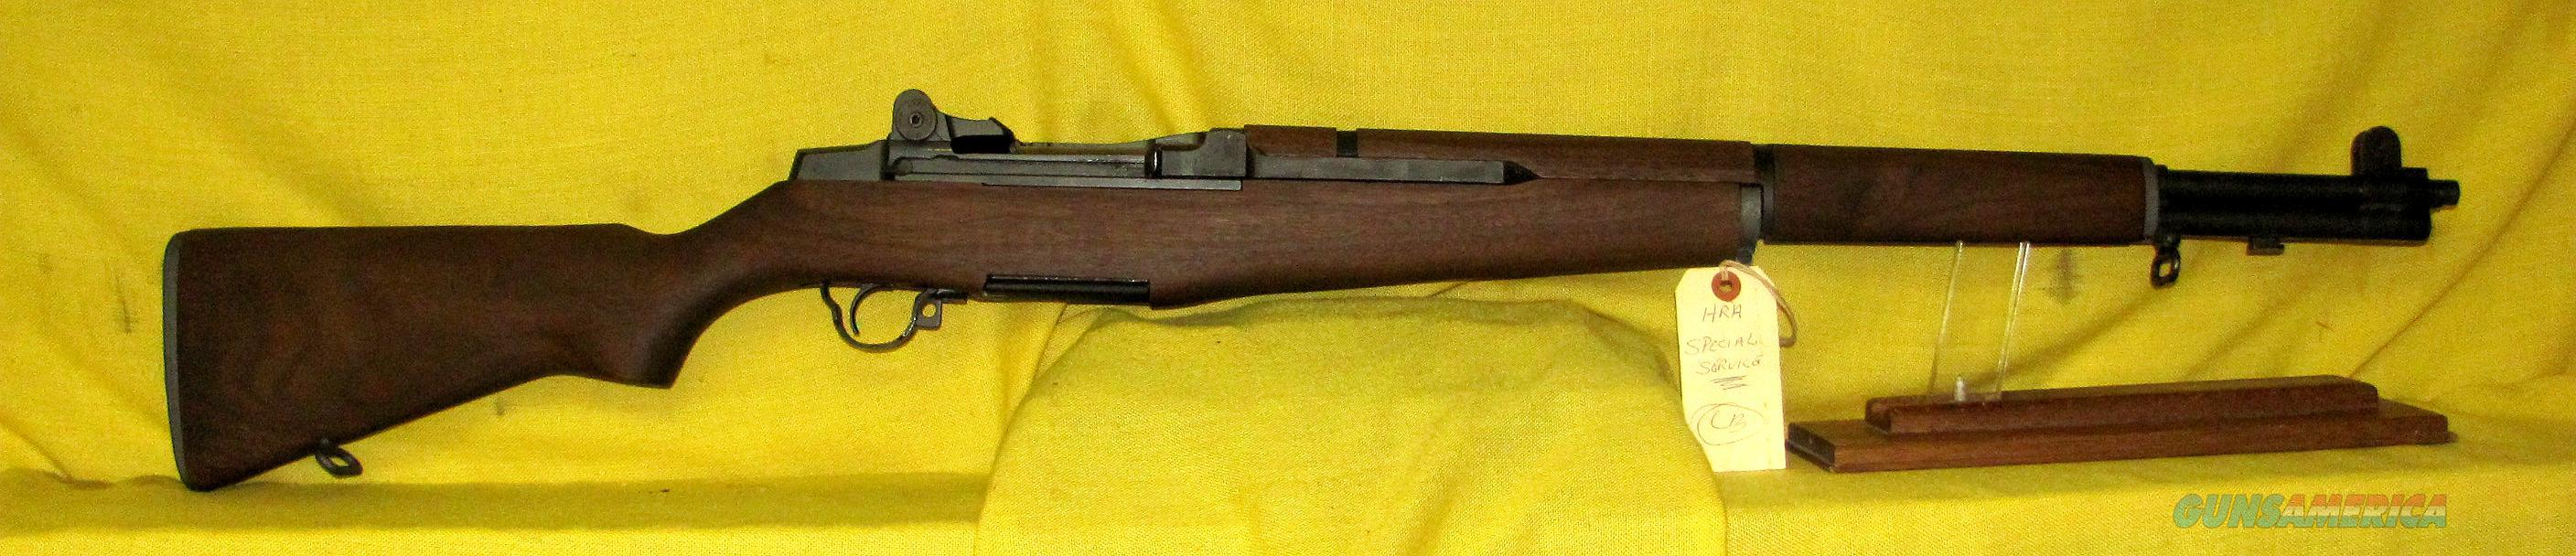 H&R MI GARAND  Guns > Rifles > Military Misc. Rifles US > M1 Garand